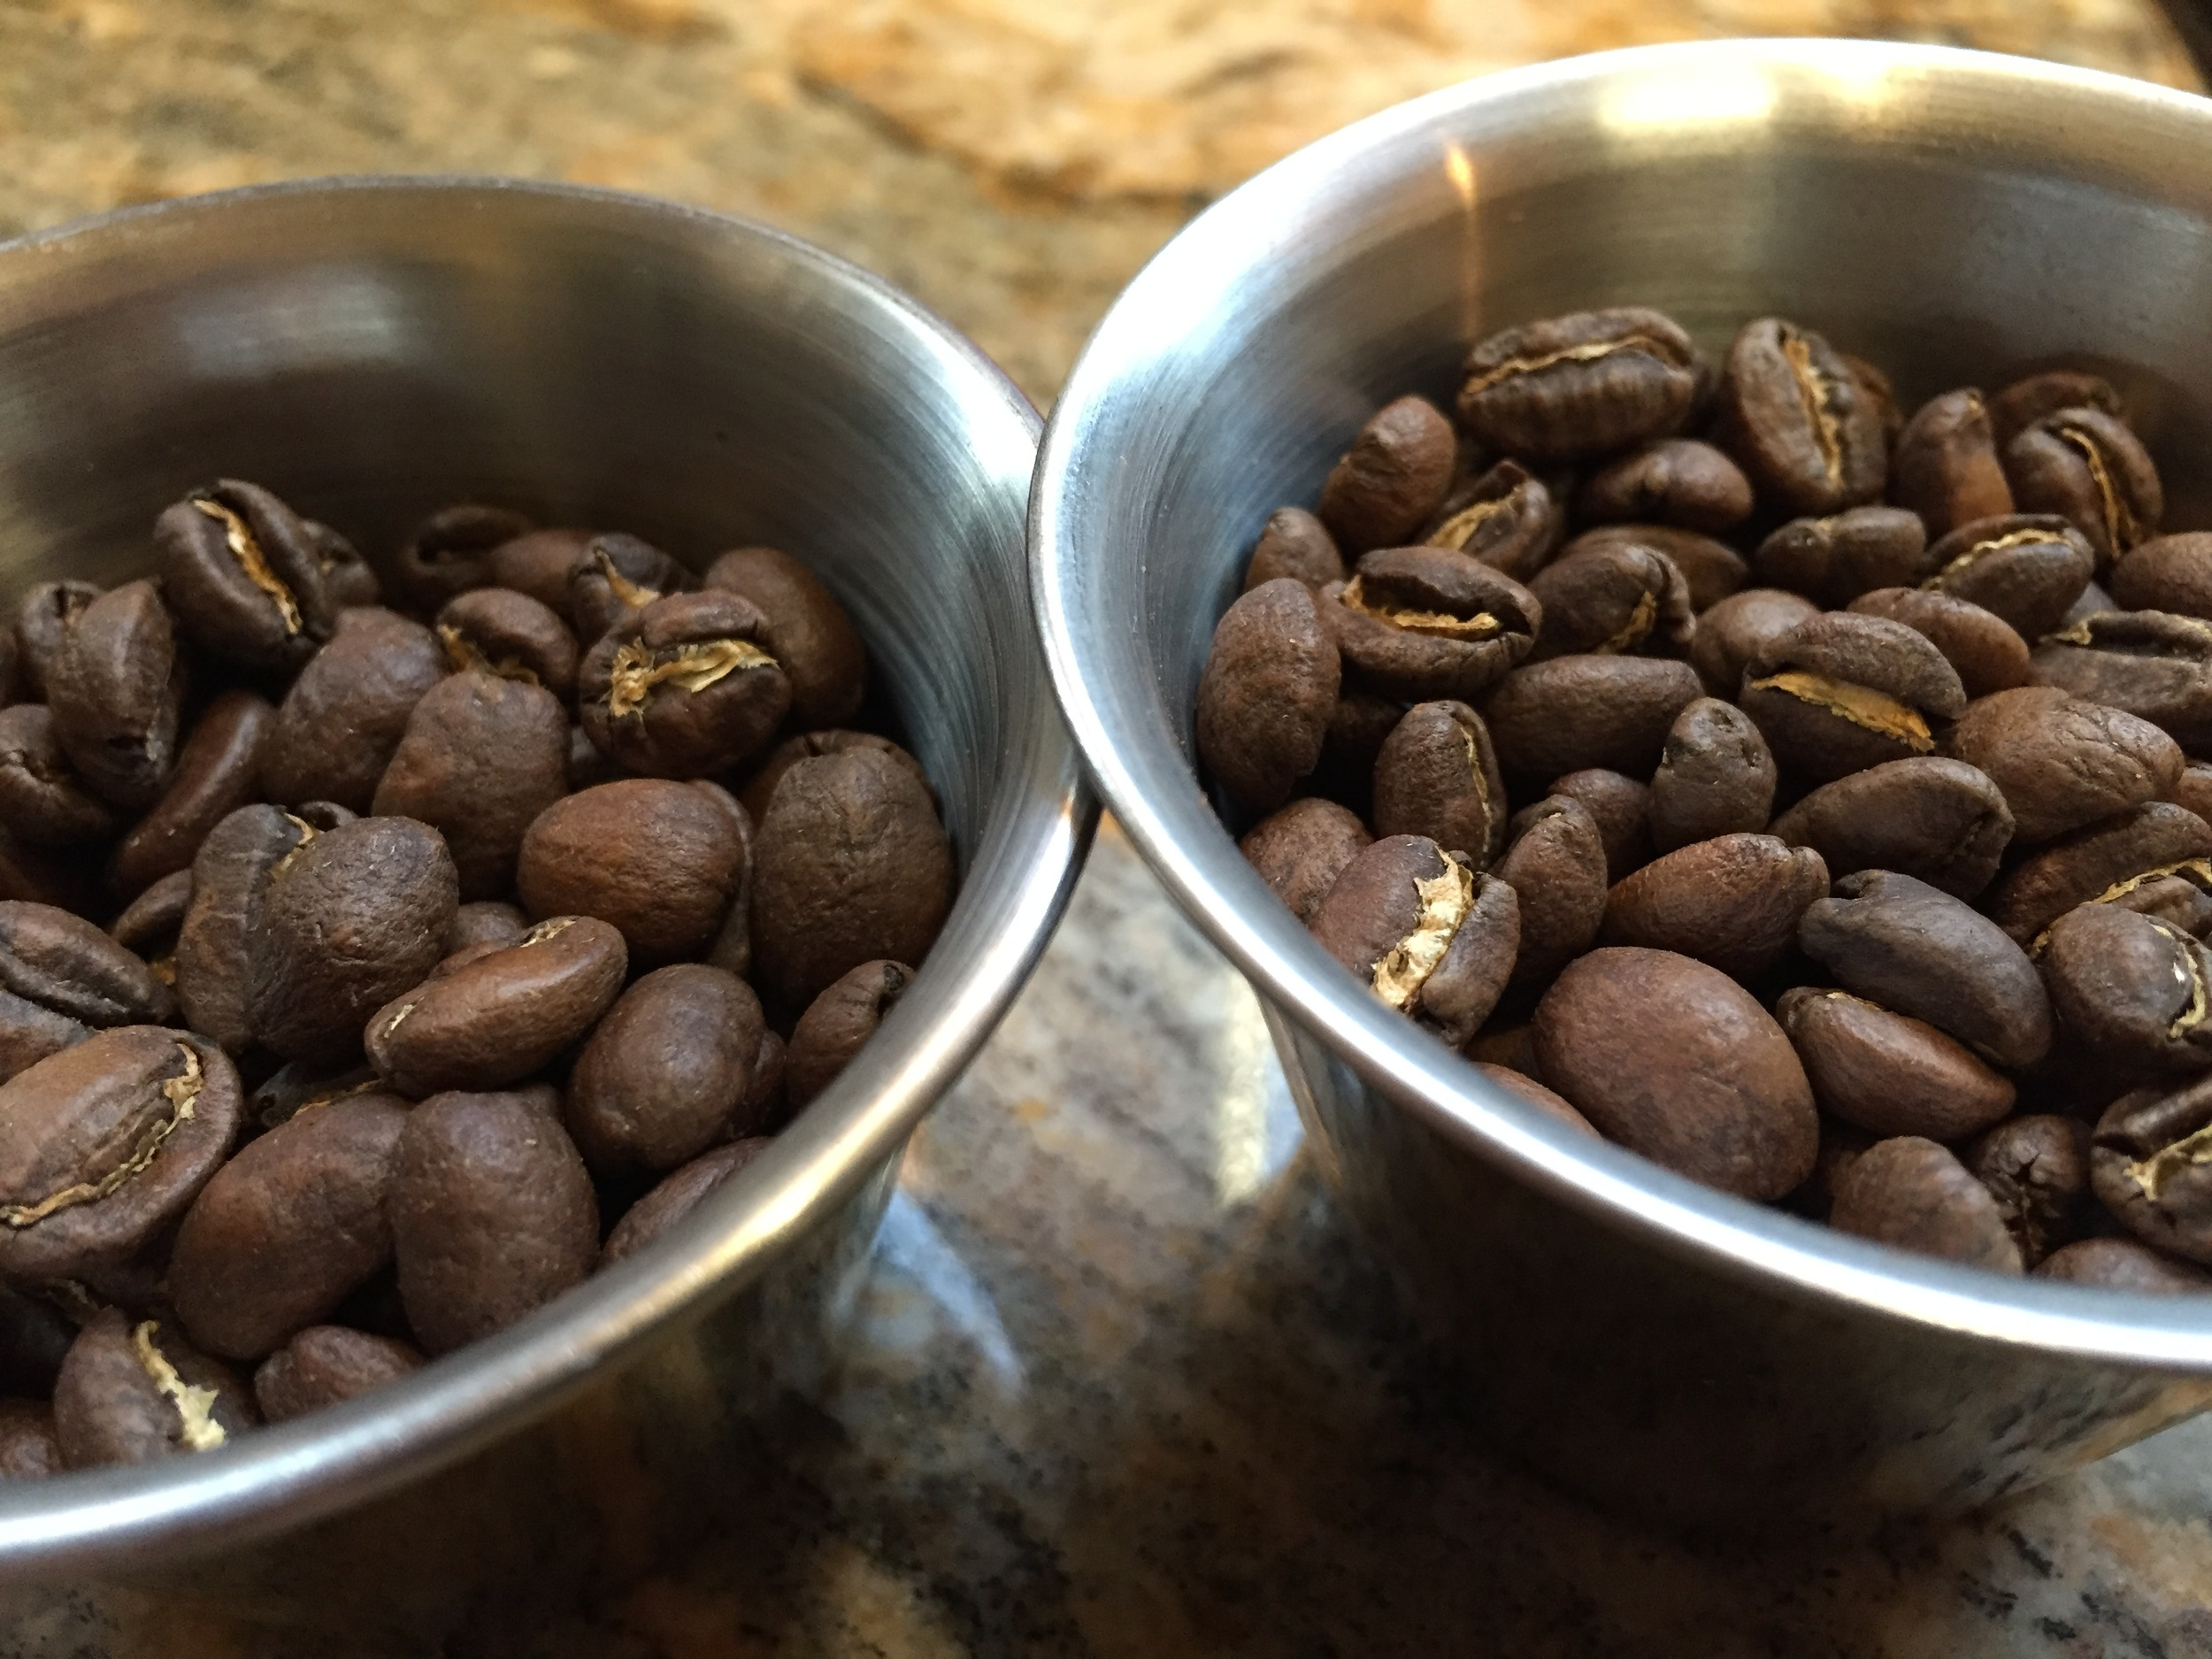 Epic Espresso with a slightly more developed roast profile on the left.  Ethiopia Deri SO on the right.